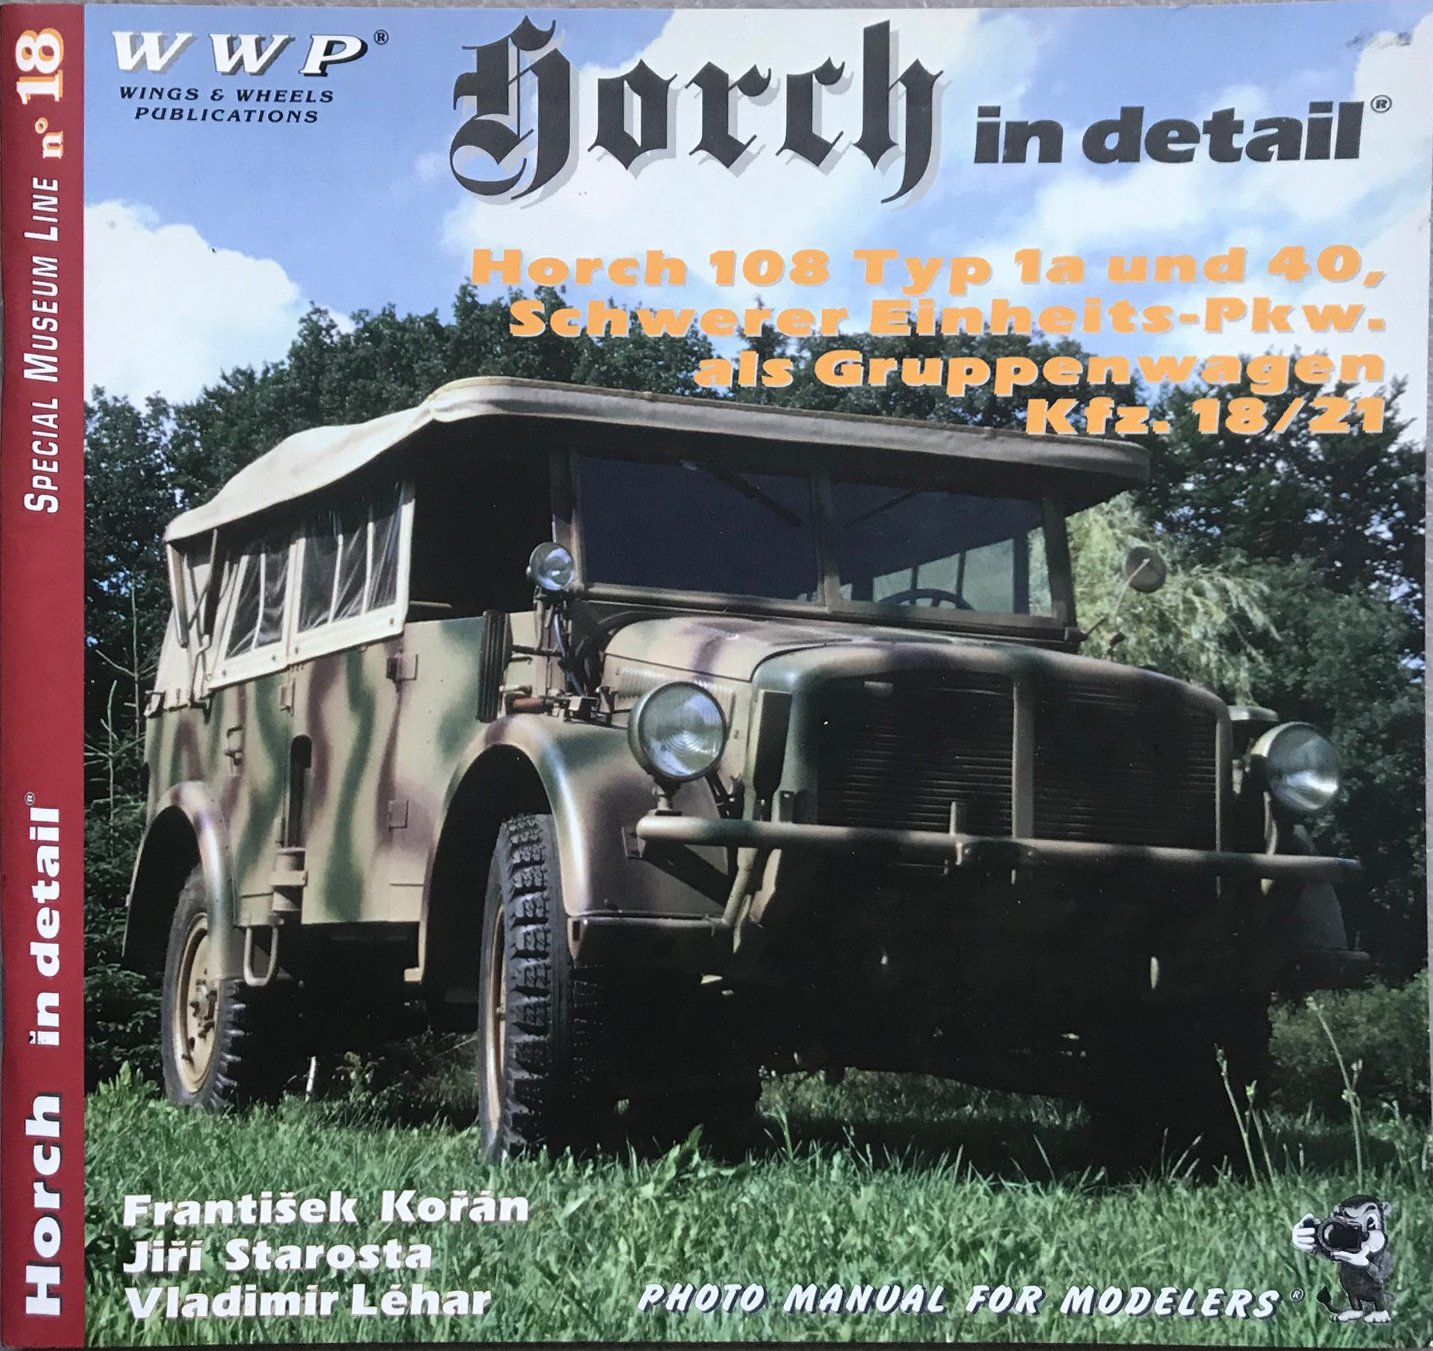 Download Horch in Detail Horch 108 Type 1a and 40, Schwerer Einheits-pkw Als Gruppenwagen Kfz. 18/21 Photo Manual for Modelers PDF